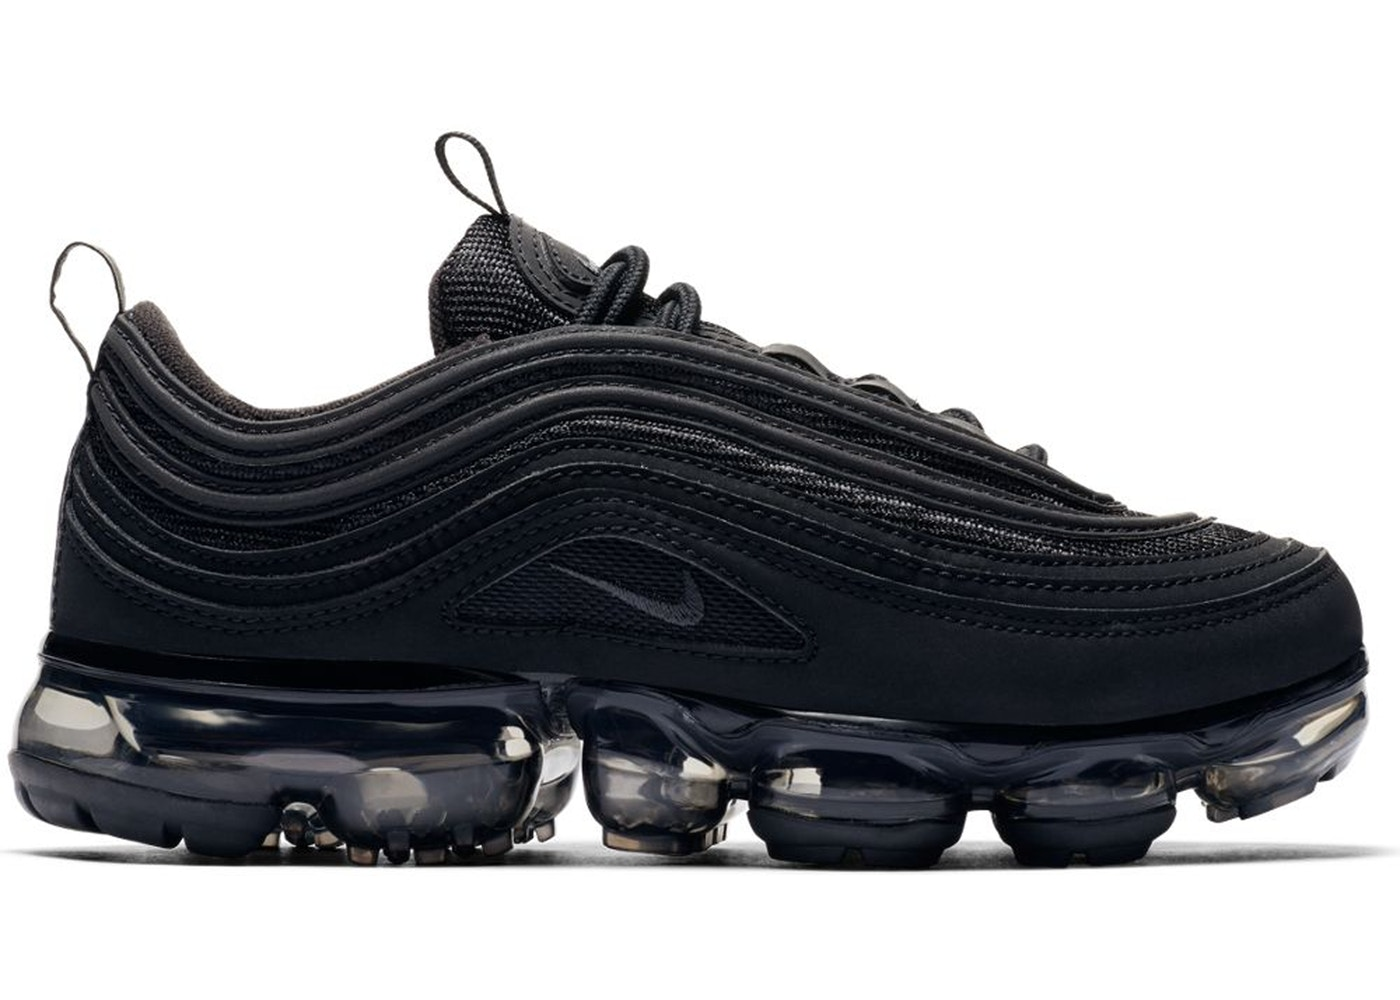 c35533ca0e3 Nike Air VaporMax 97  Black Reflect - True Looks